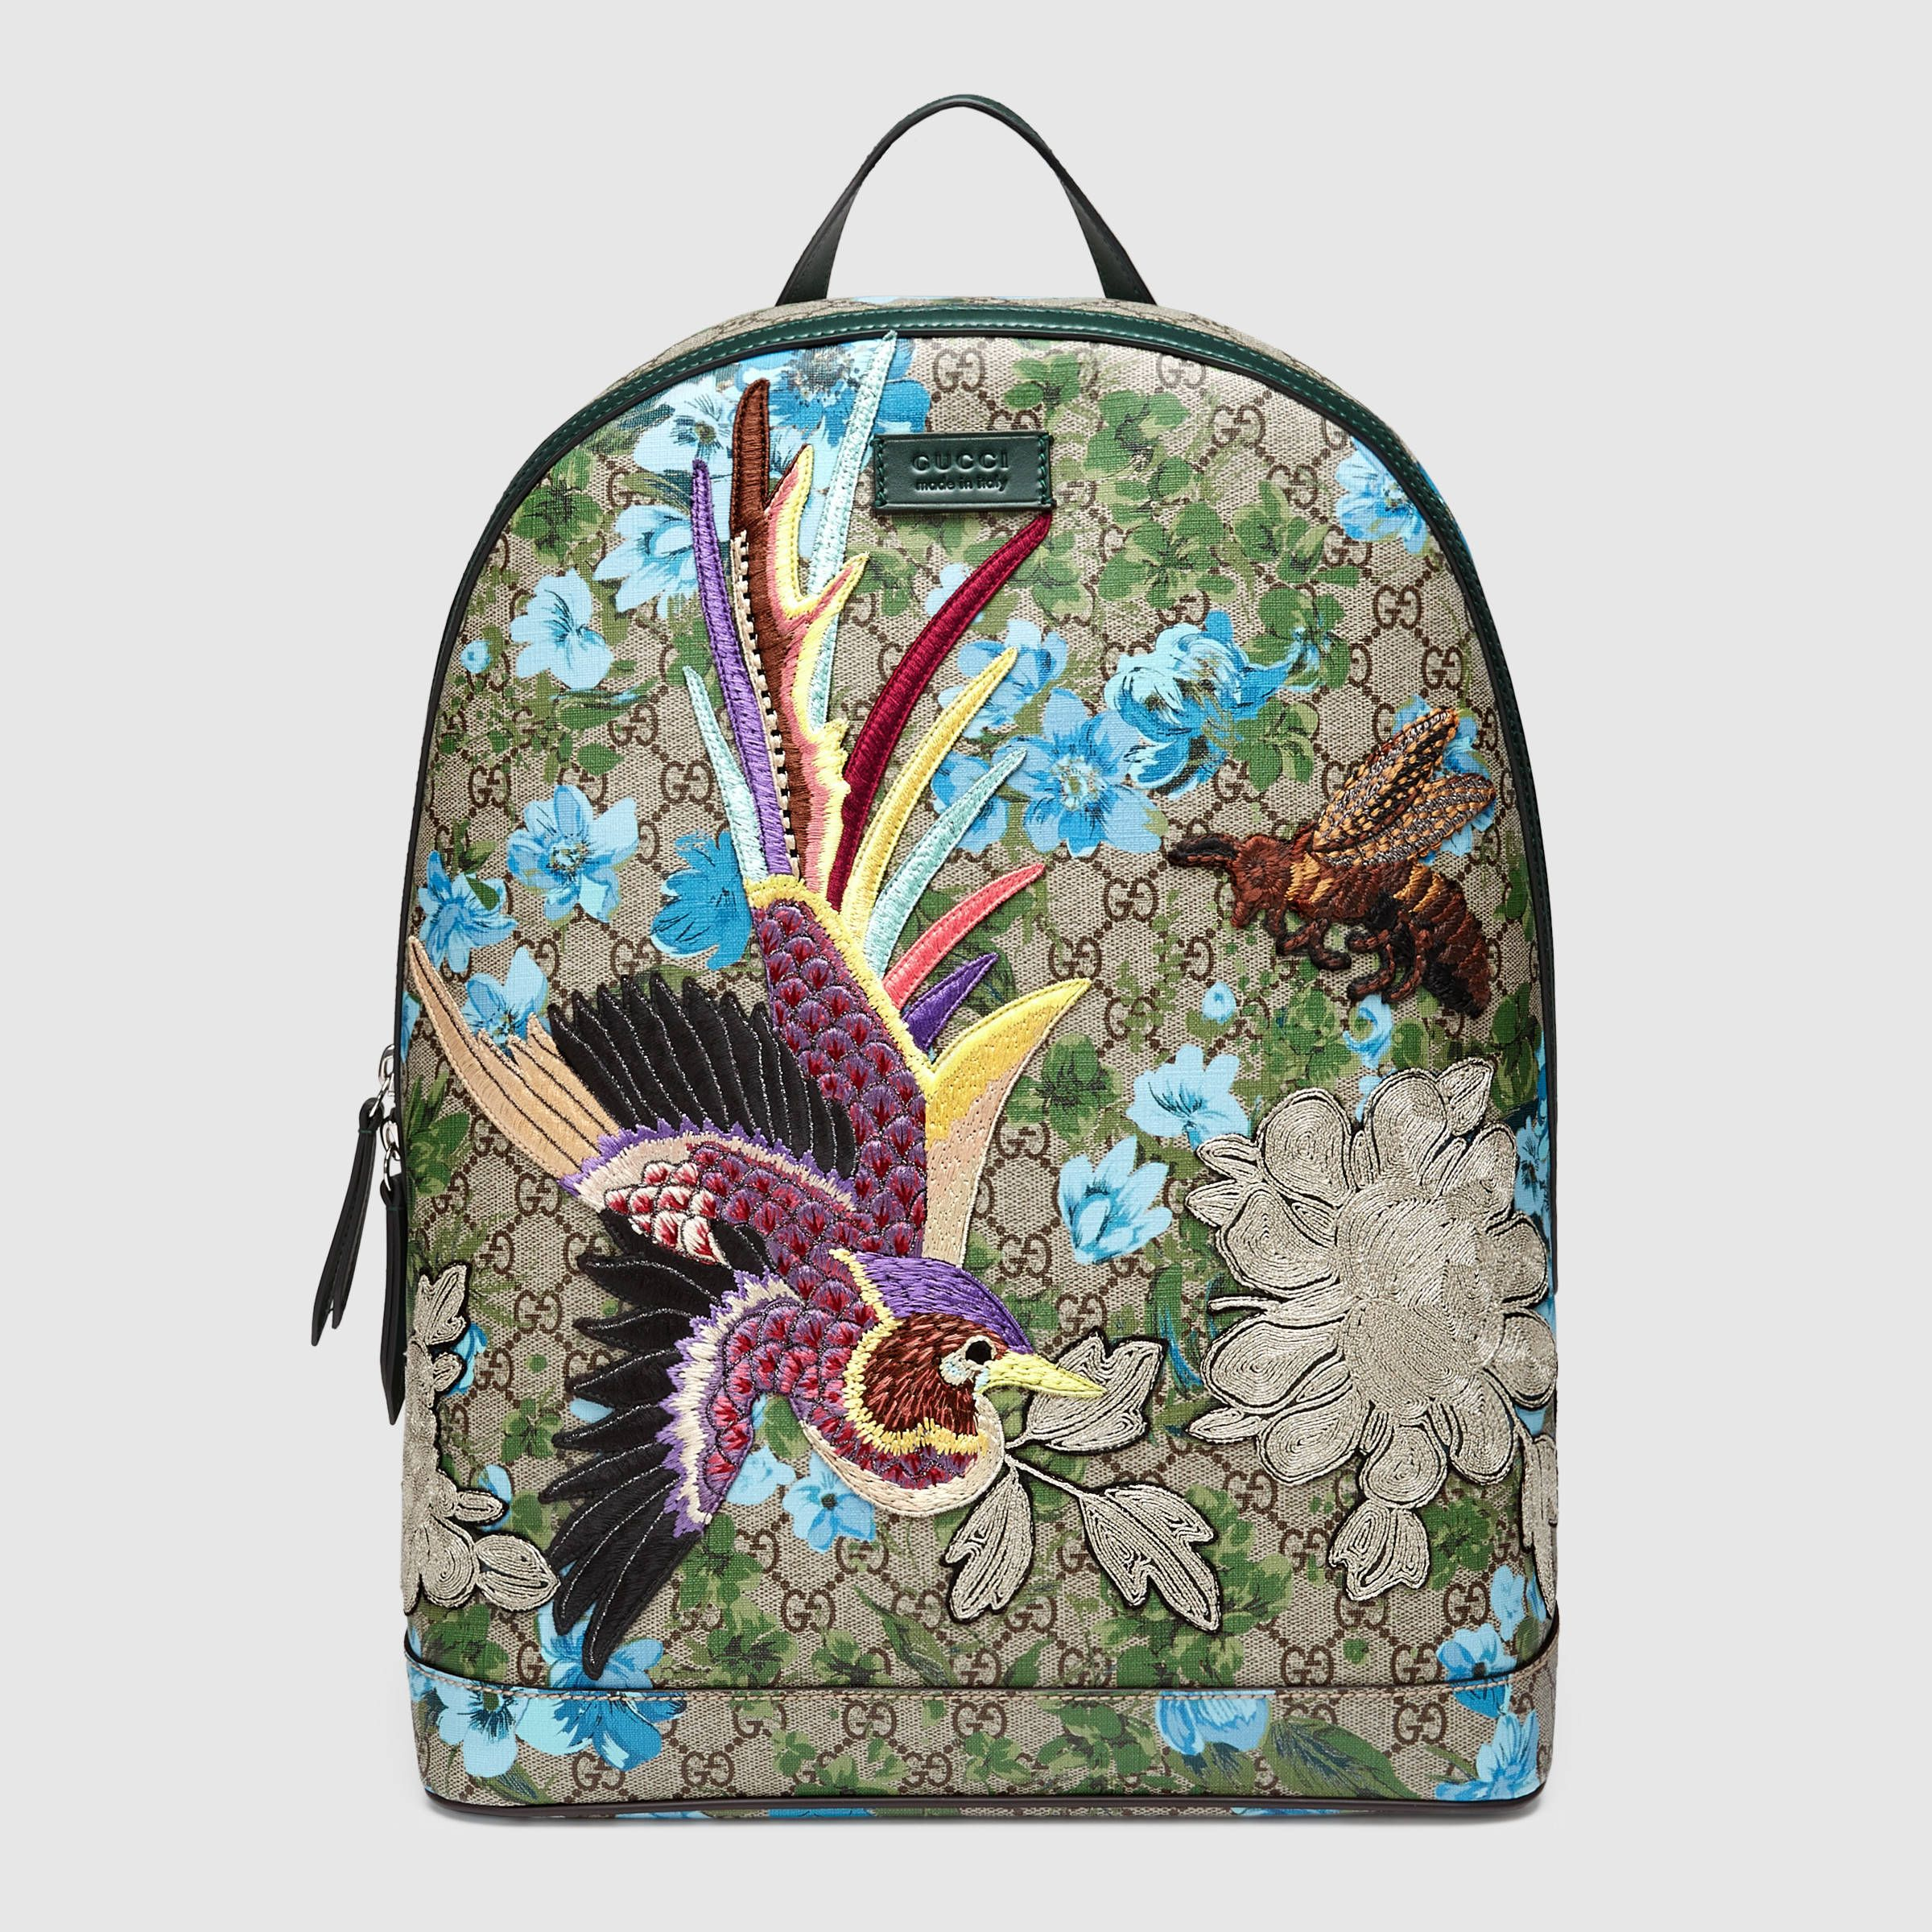 9927ab1d Gucci Men - Gucci XL GG floral print backpack - 419584KYSDK8936 ...